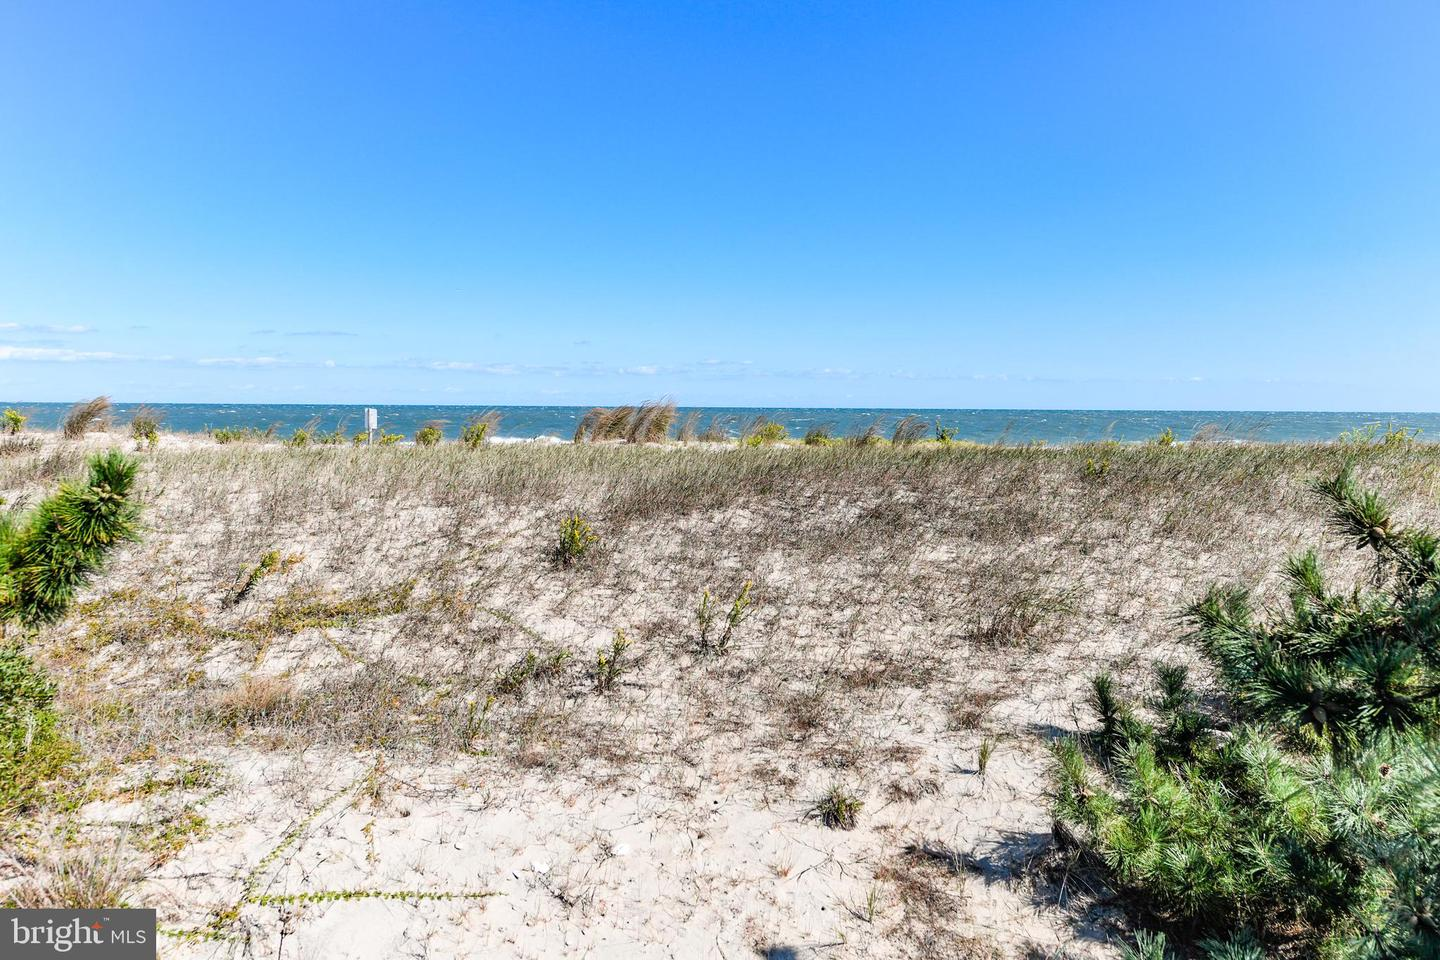 DESU149860-302120927486-2019-10-17-18-04-16 1203 Bunting Ave | Fenwick Island, De Real Estate For Sale | MLS# Desu149860  - Suzanne Macnab